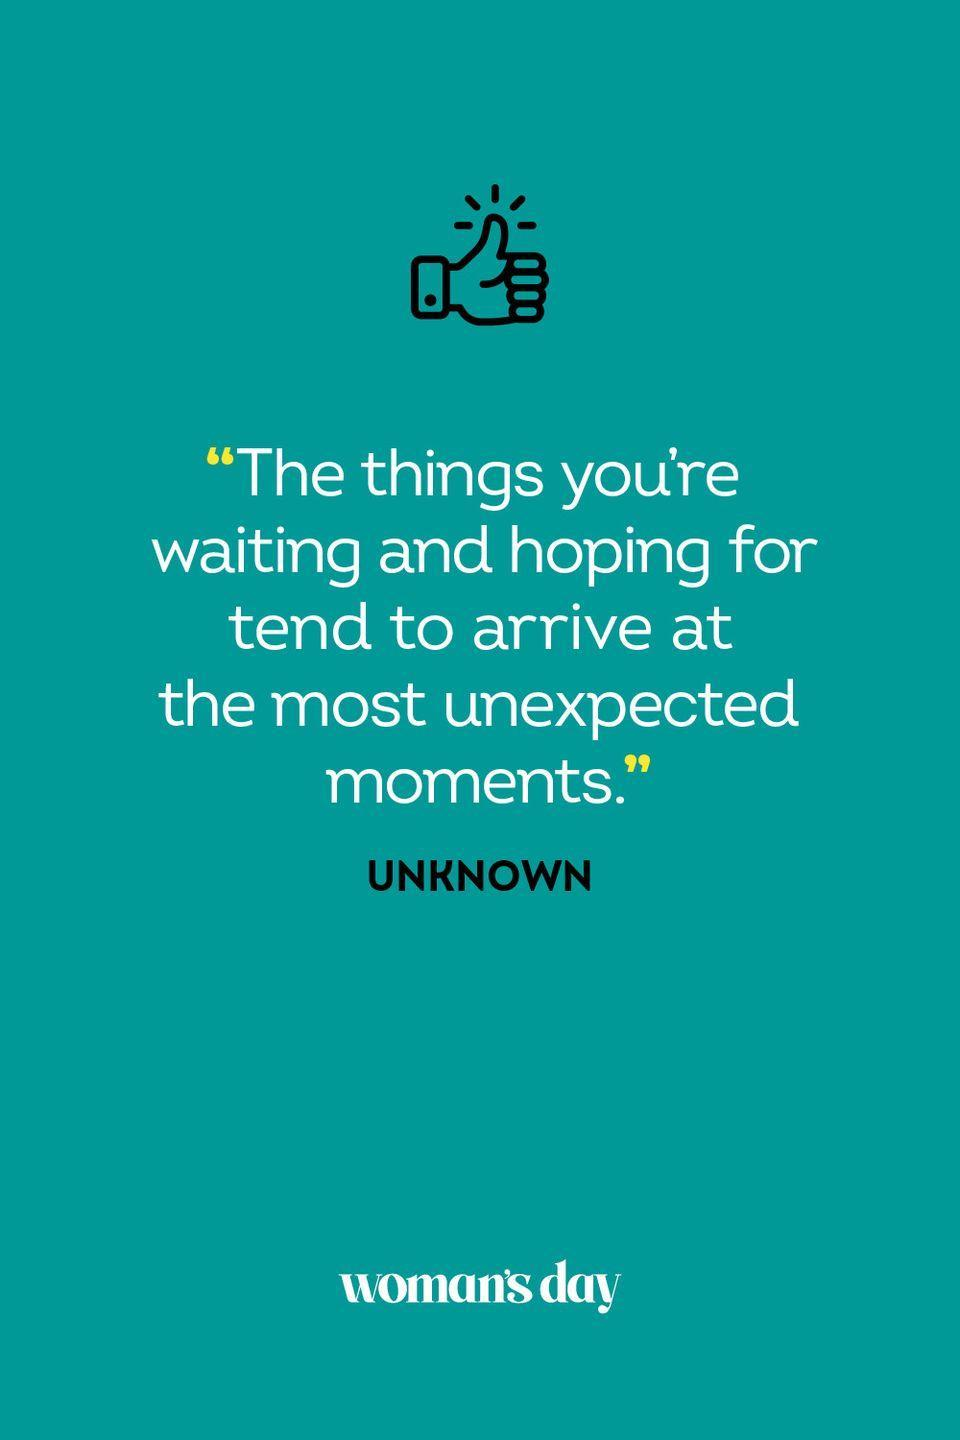 <p>The things you're waiting and hoping for tend to arrive at the most unexpected moments.</p>